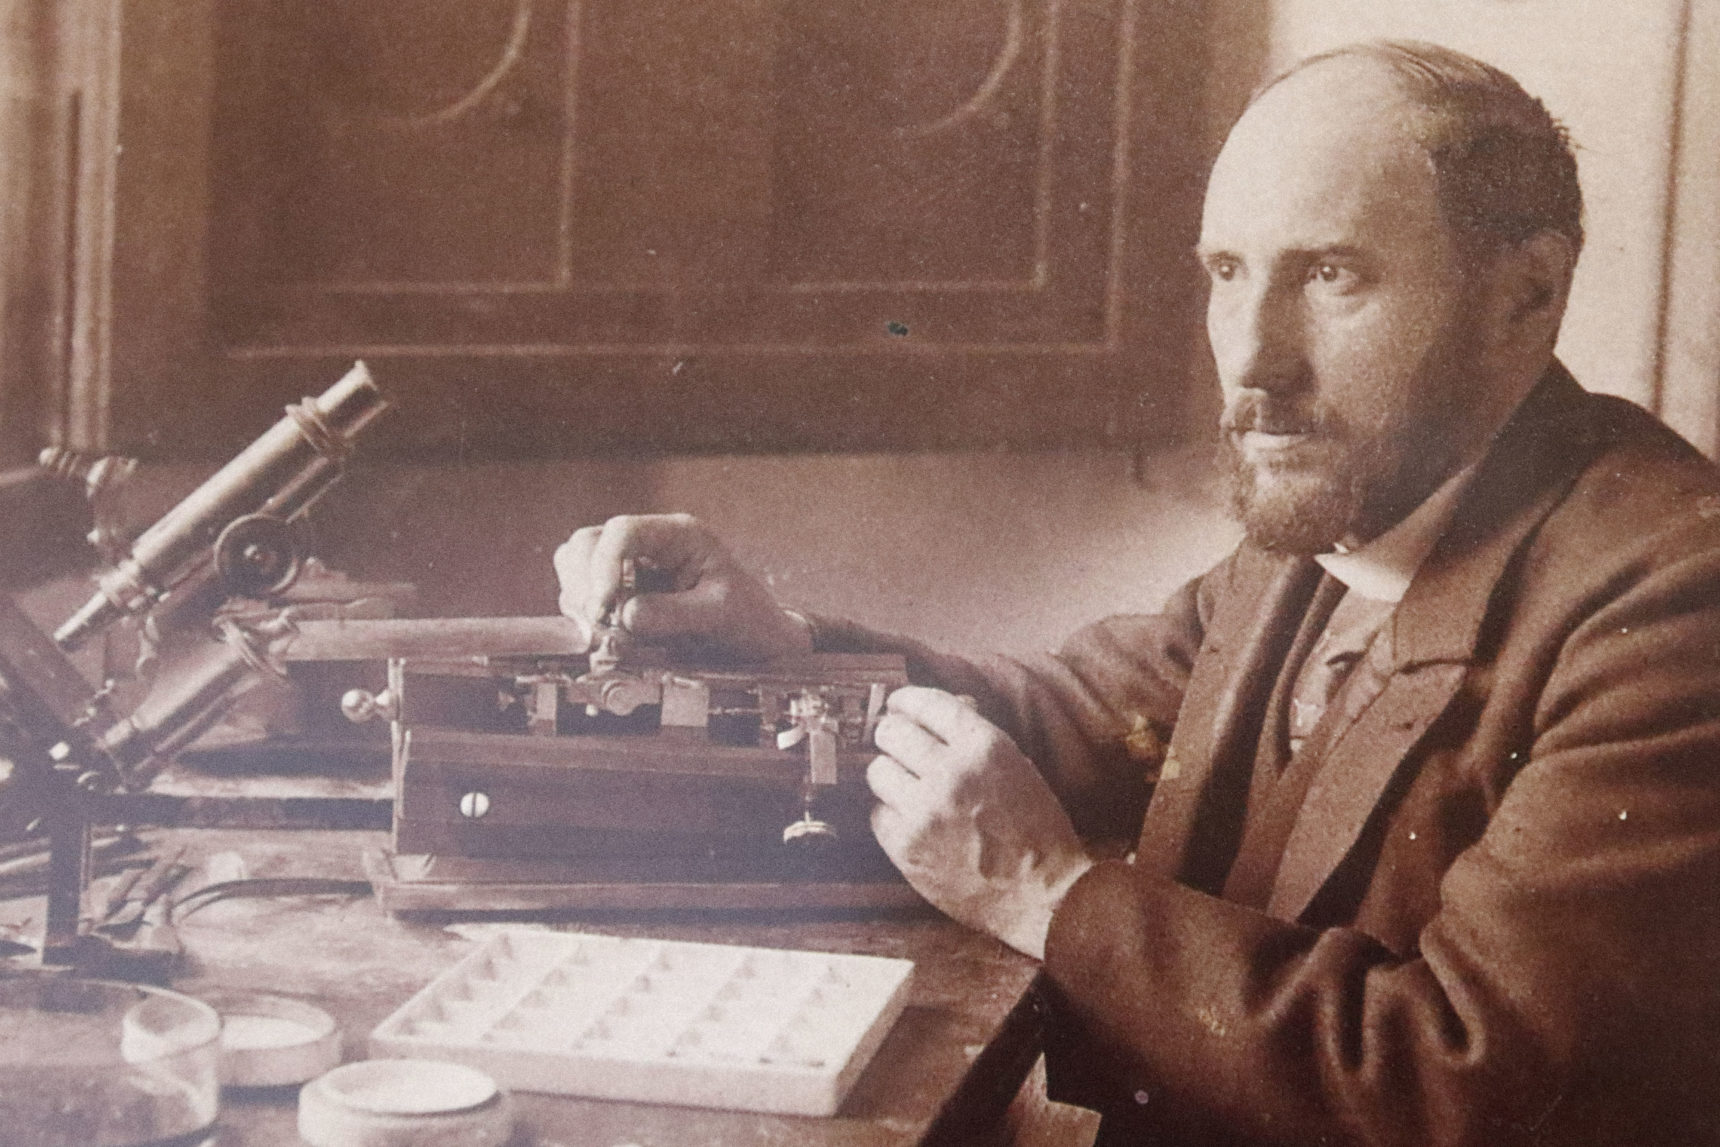 This early photograph of Santiago Ramón y Cajal at his desk (center) is likely a self-portrait. Cajal was an avid photographer who often experimented with black-and-white, color and stereographic images. The flanking images shows some of the tools he used in his work with microscopy. The collection of chemicals with which he stained tissues for microscopy is at left. The Golgi method that Cajal used to stain individual neurons is based on the same silver-nitrate chemistry that he used in developing his photographs. At right are Cajal's microtome, used for slicing brain tissue to make microscope slides, and his microscope.